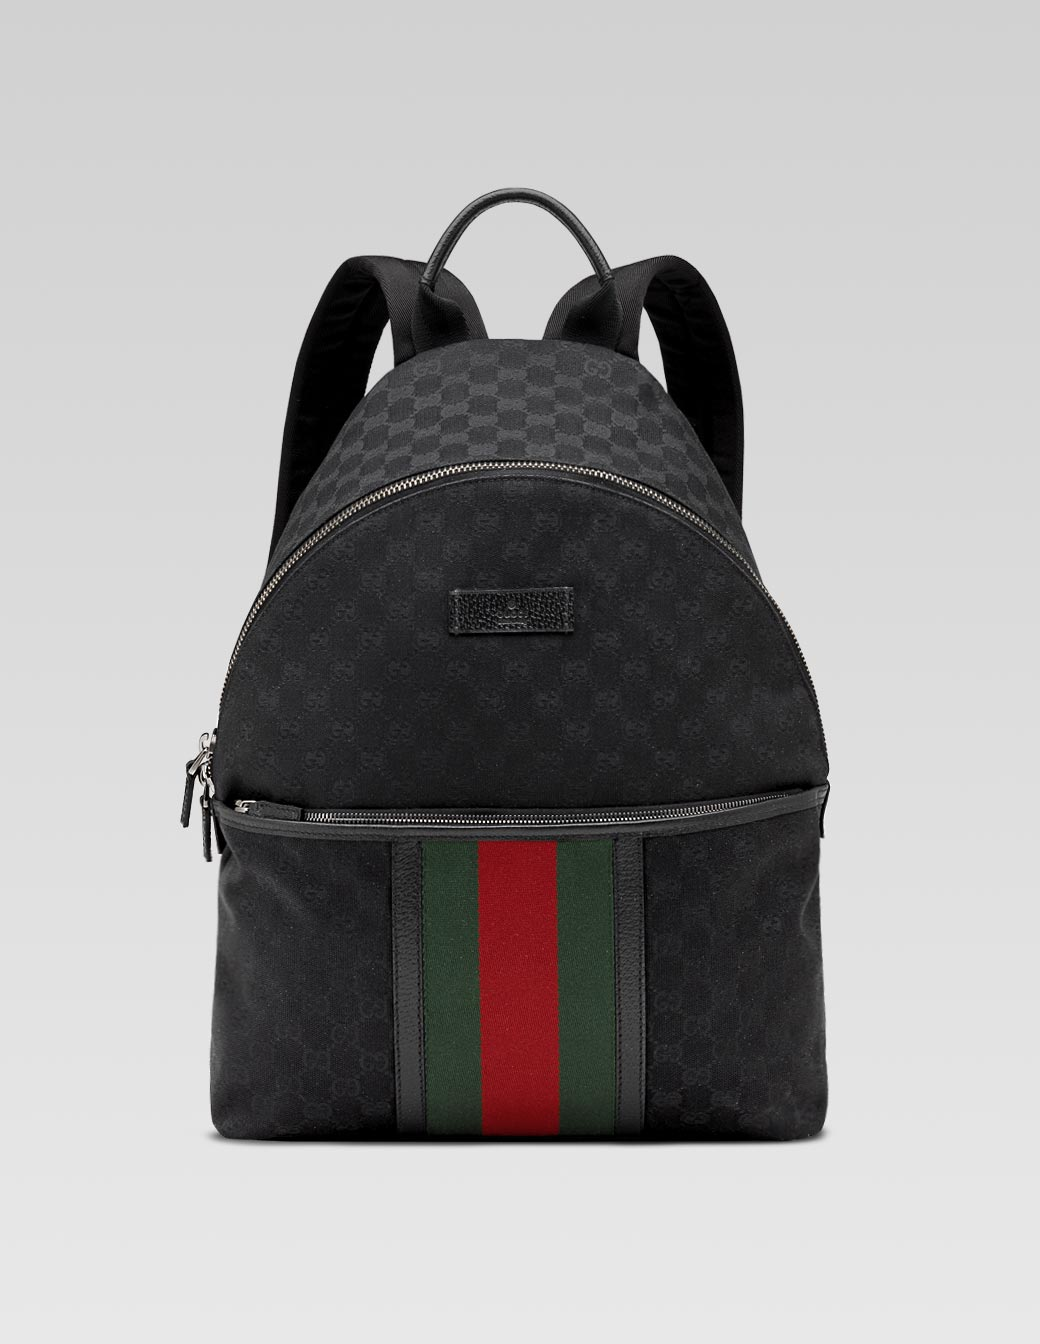 0eefe5f4c7ef Gucci Purse Backpacks | Stanford Center for Opportunity Policy in ...